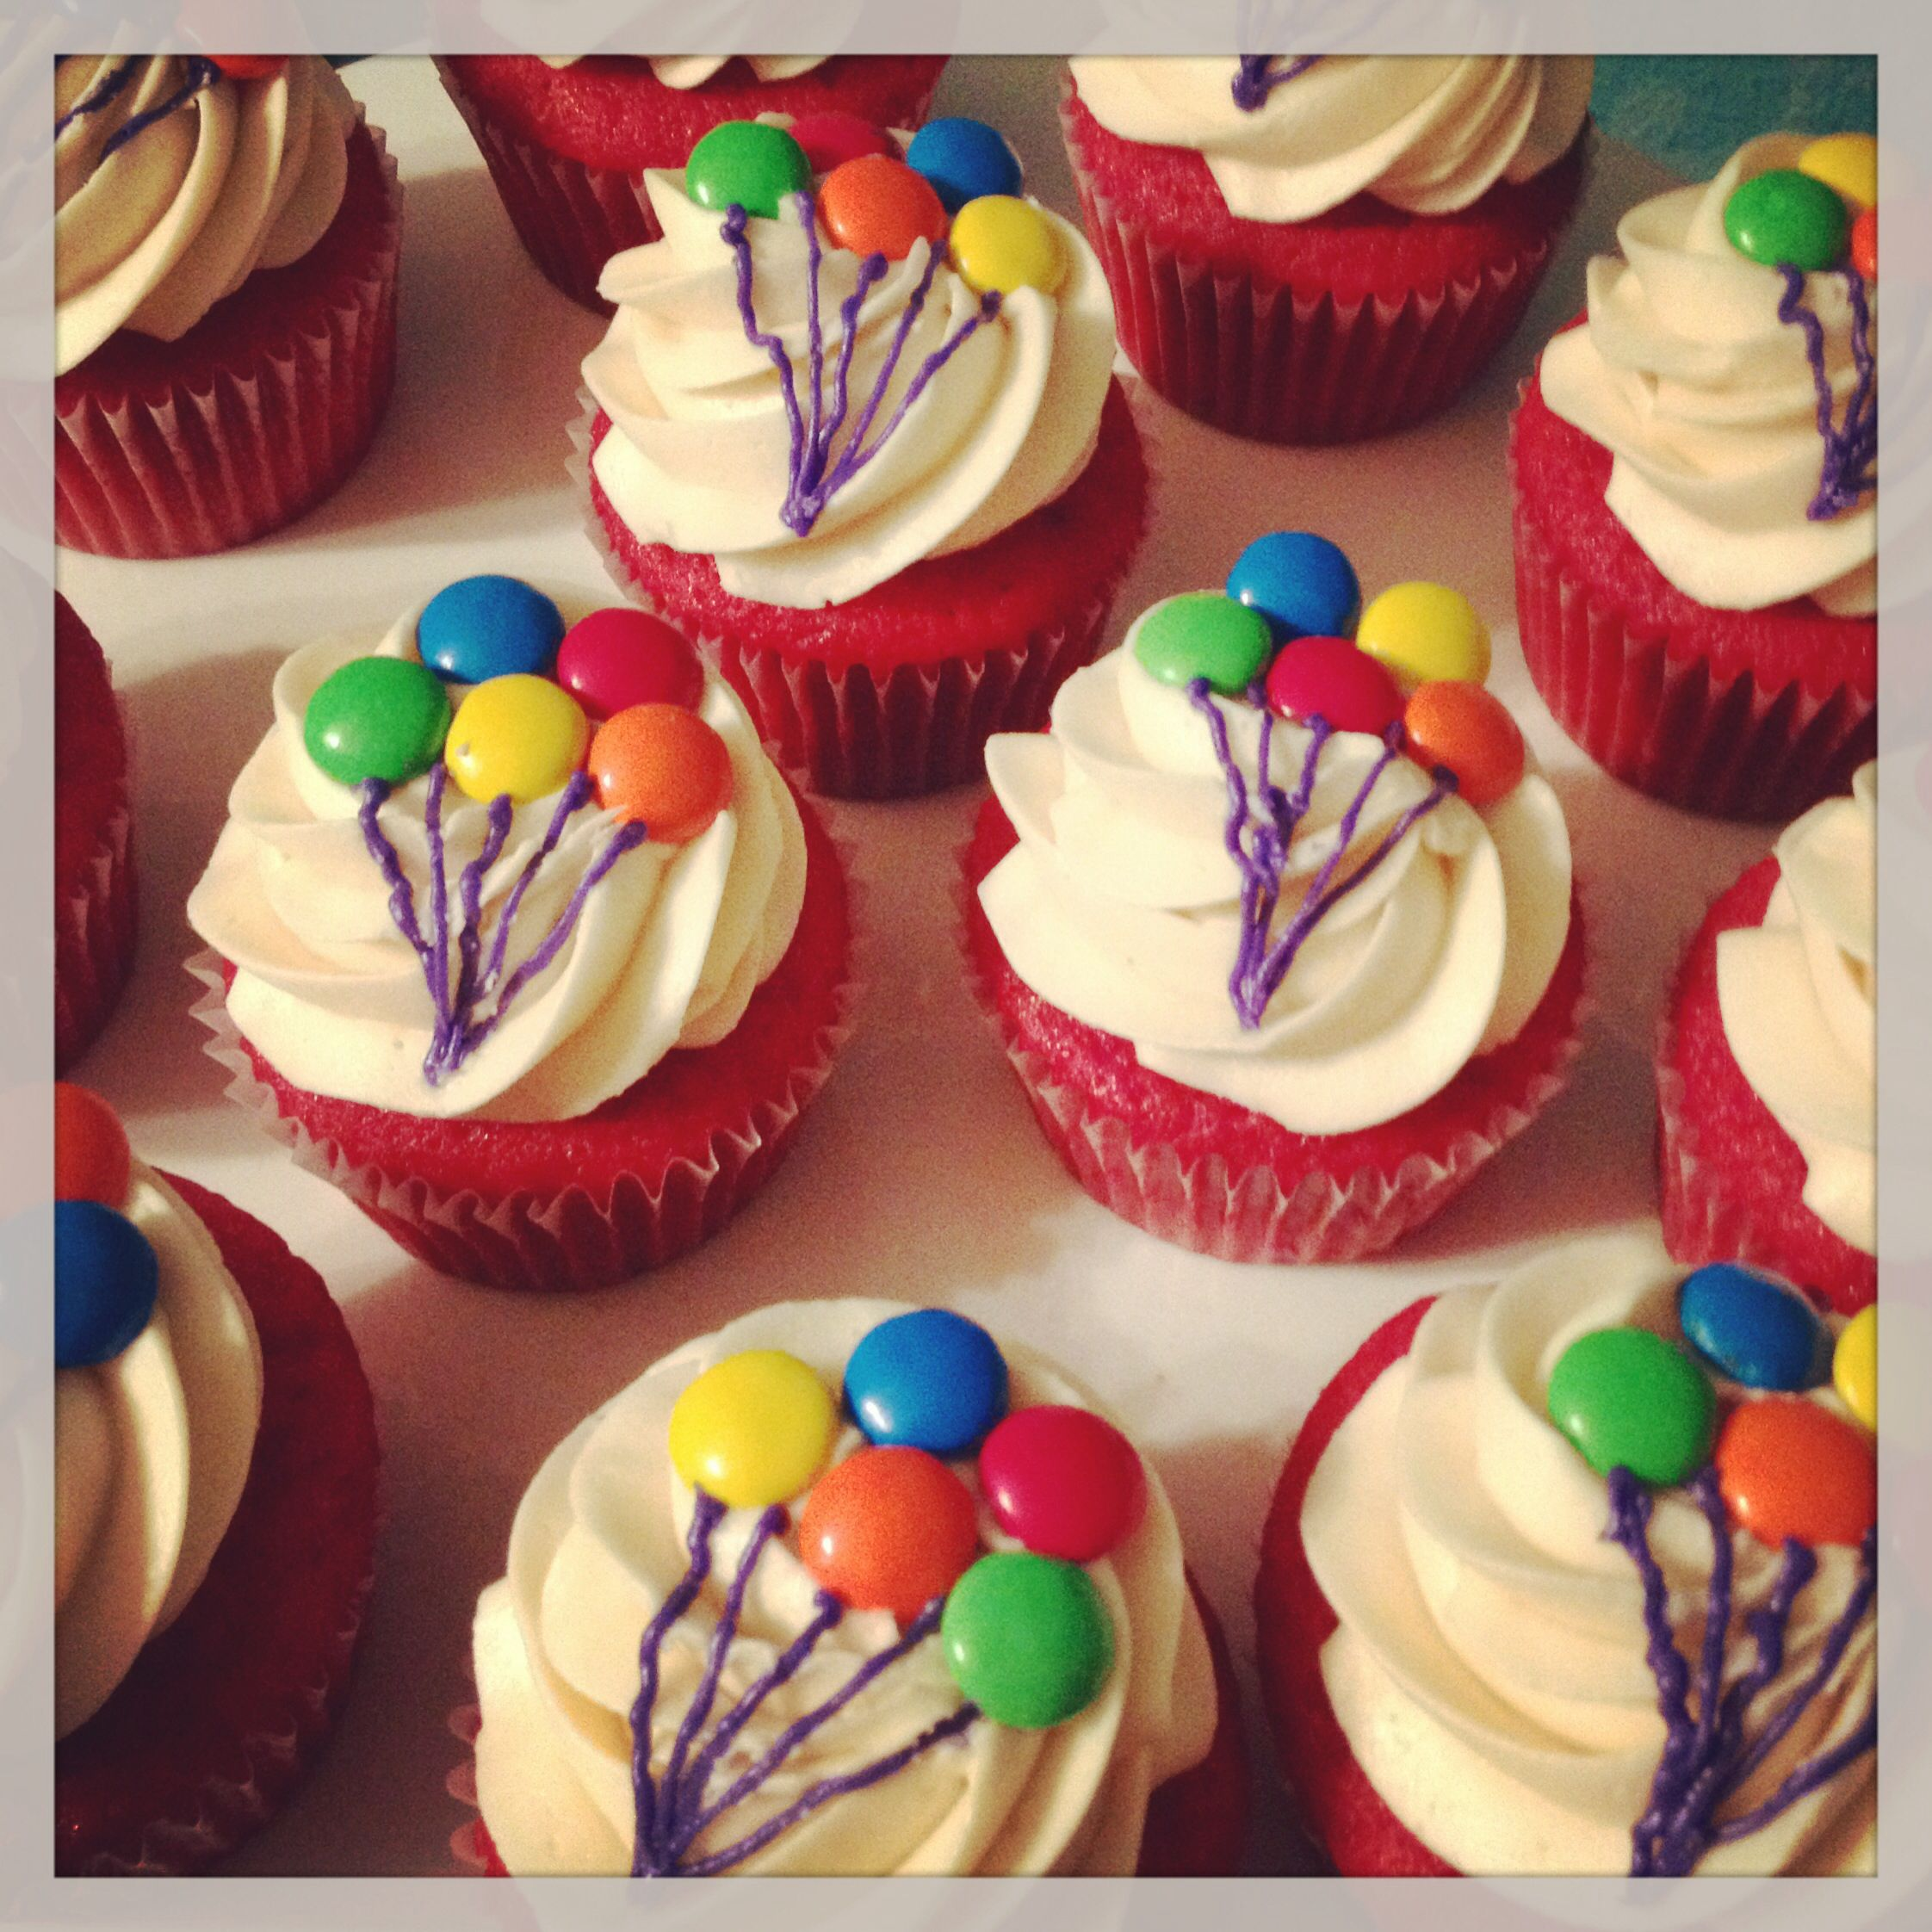 Birthday Cake Ideas With Cupcakes : Birthday Balloon Cupcakes Sweet Treats Pinterest ...